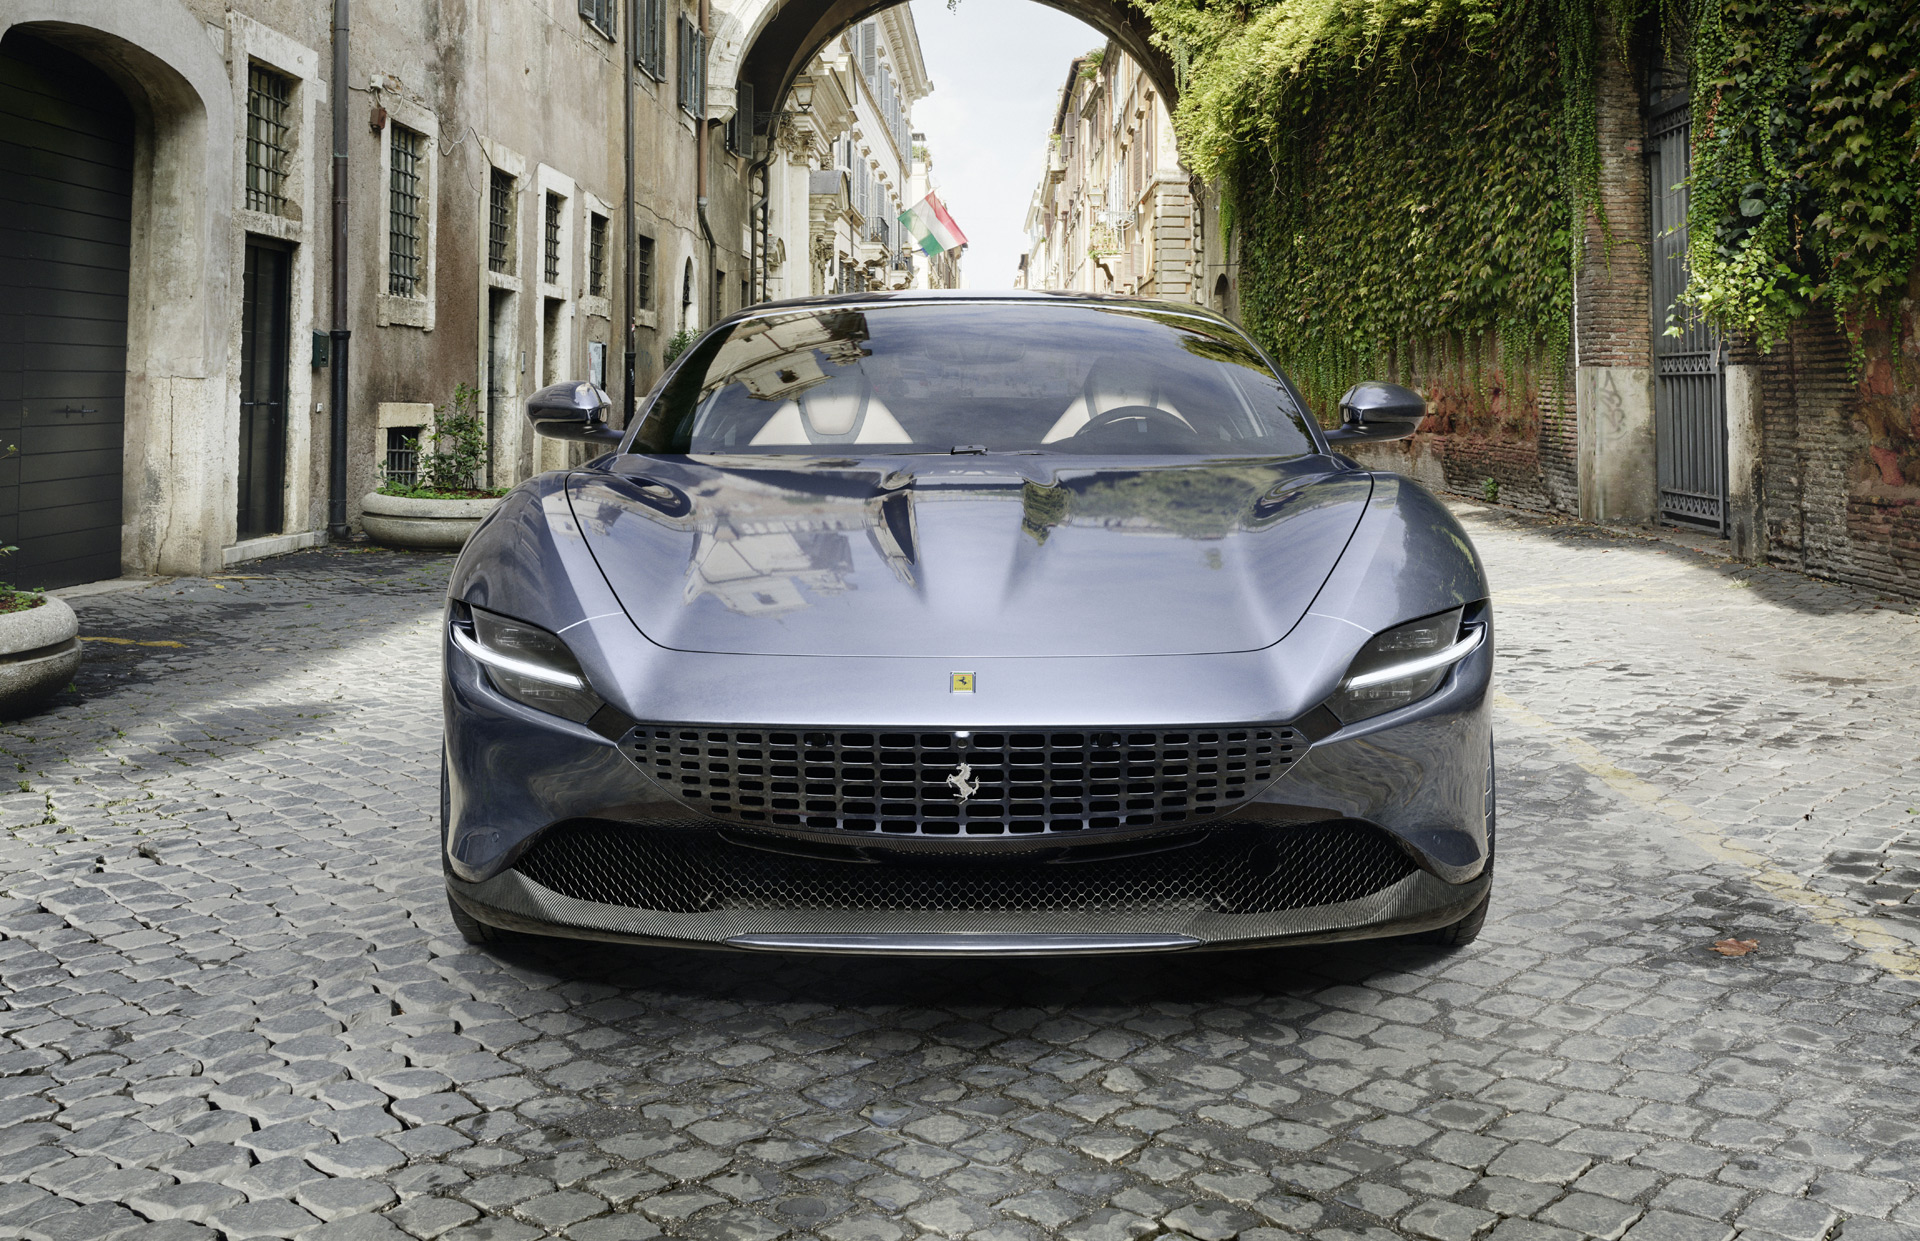 Ferrari passes 10,000 annual sales for first time